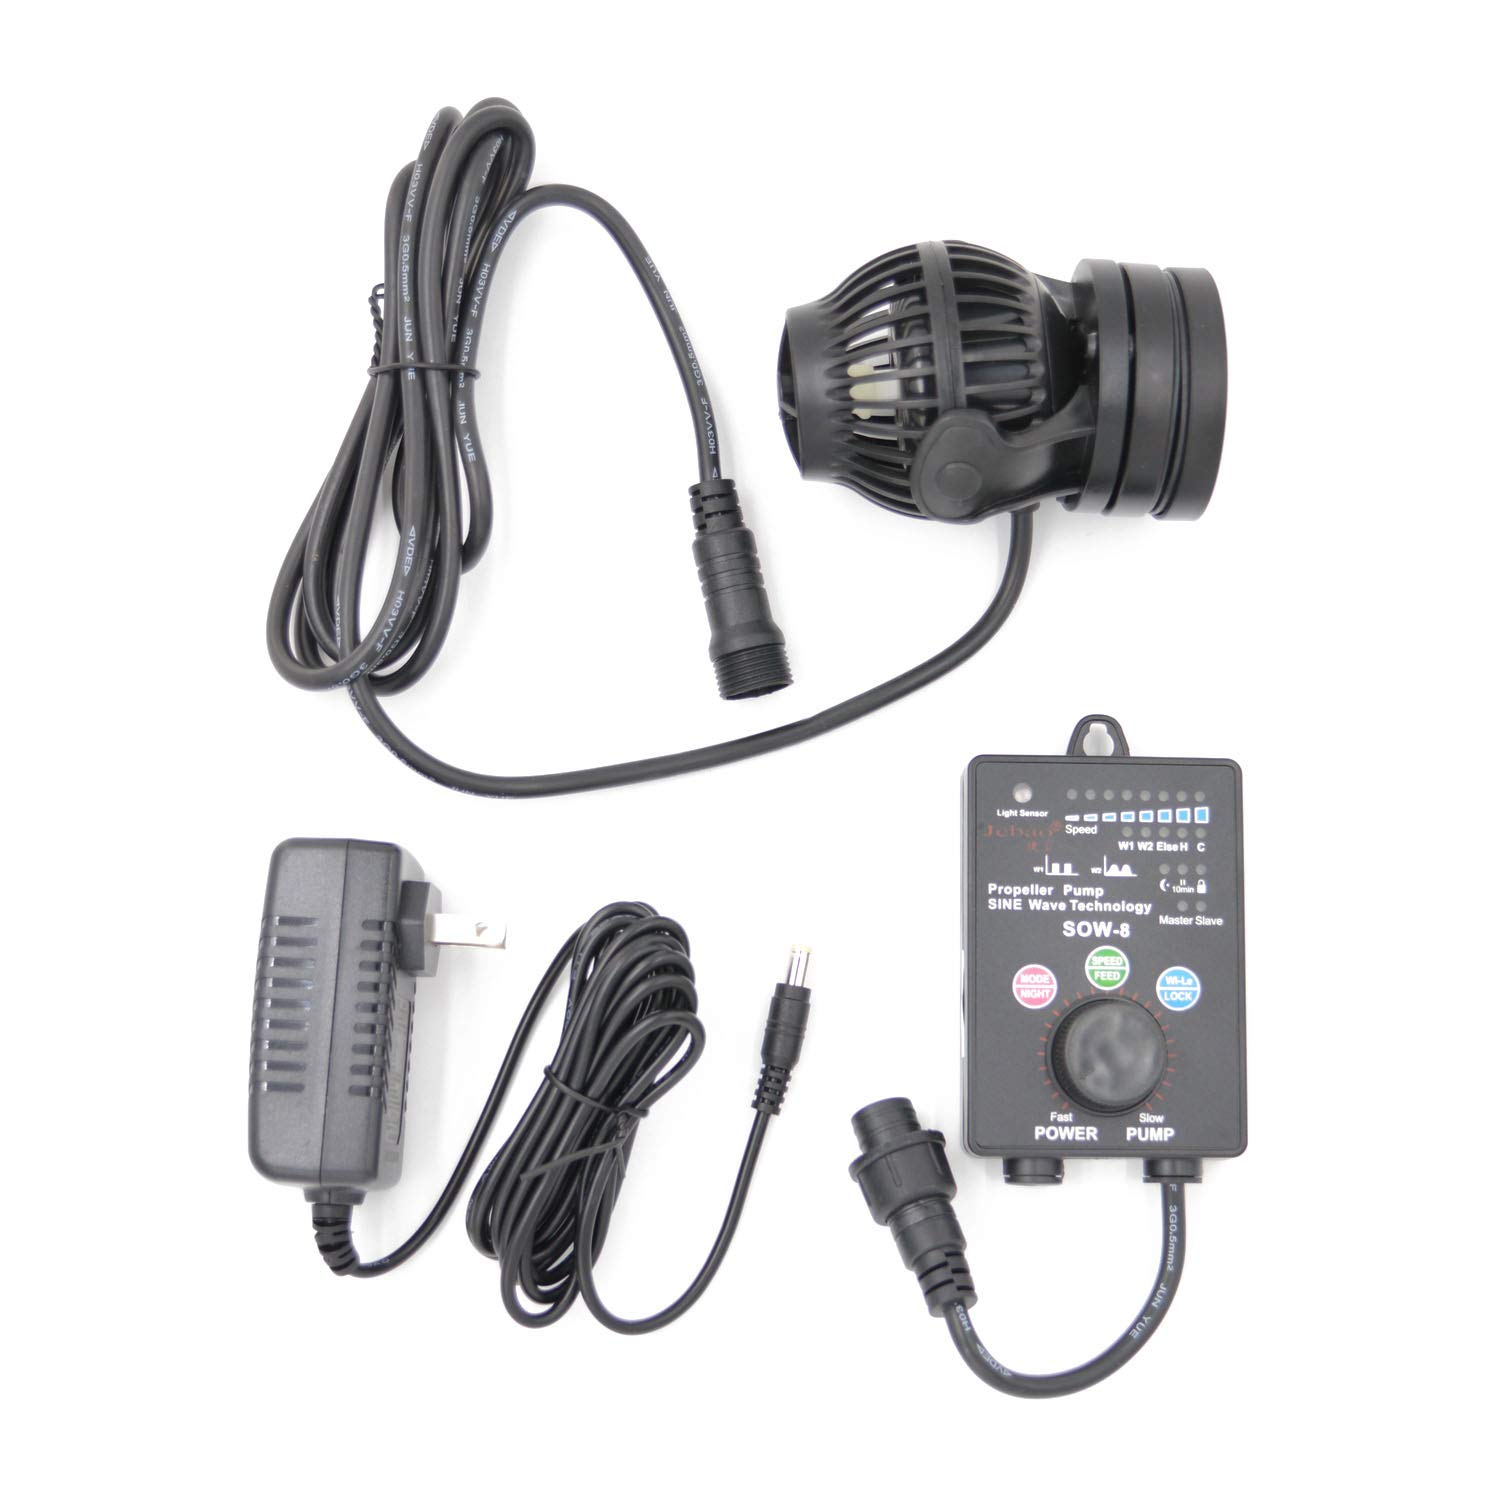 Amazon.com : Jebao SOW Wave Maker Flow Pump with Controller for Marine Reef Aquarium (SOW-15) : Pet Supplies